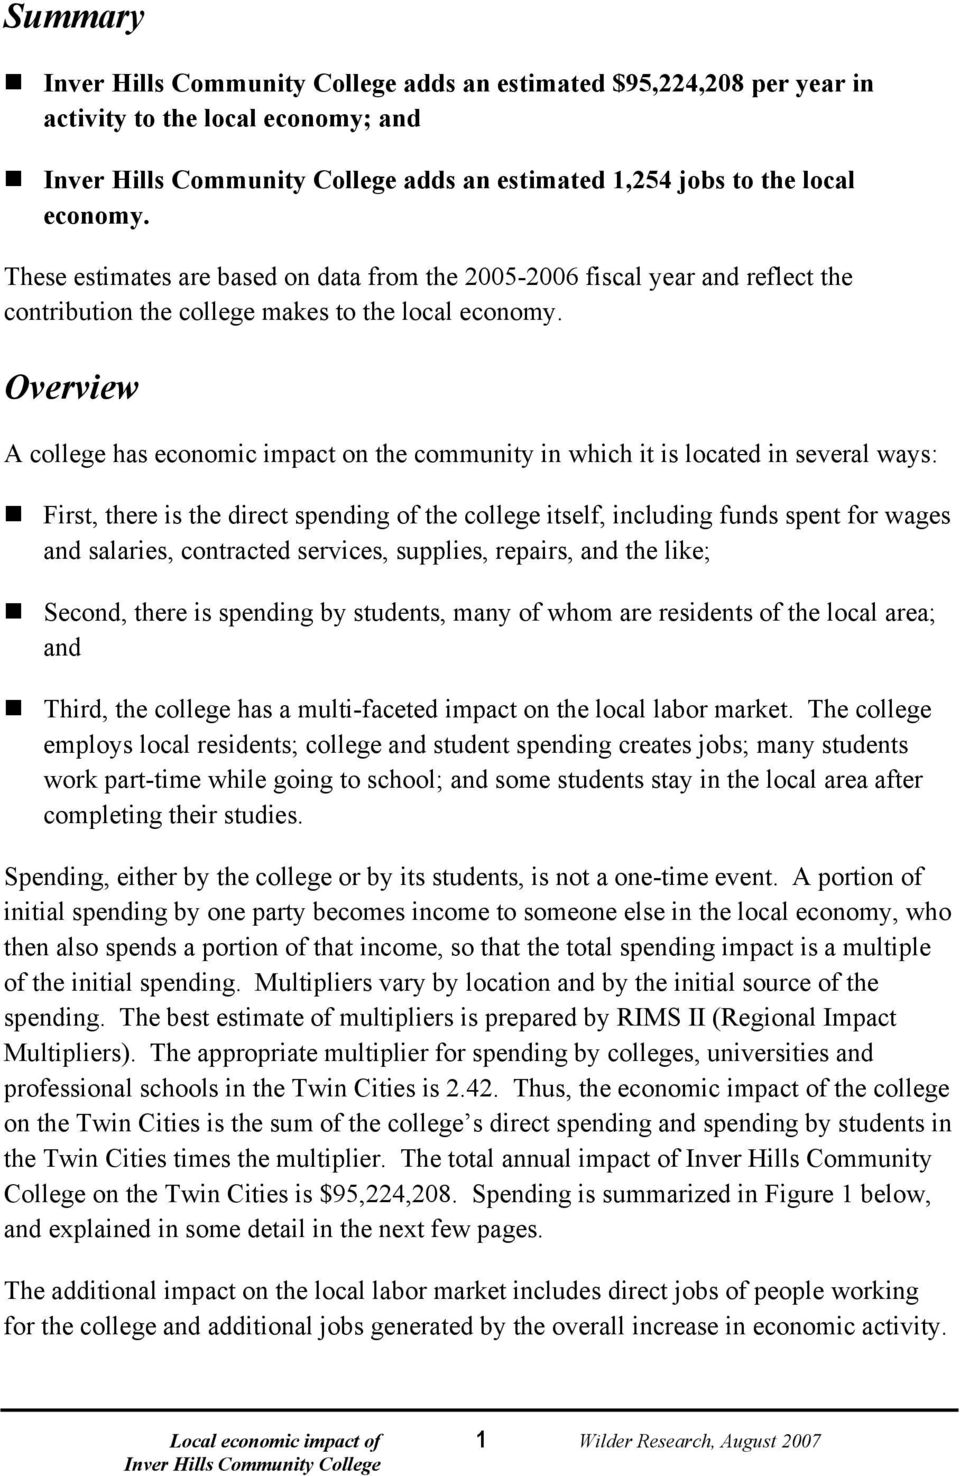 Overview A college has economic impact on the community in which it is located in several ways: First, there is the direct spending of the college itself, including funds spent for wages and